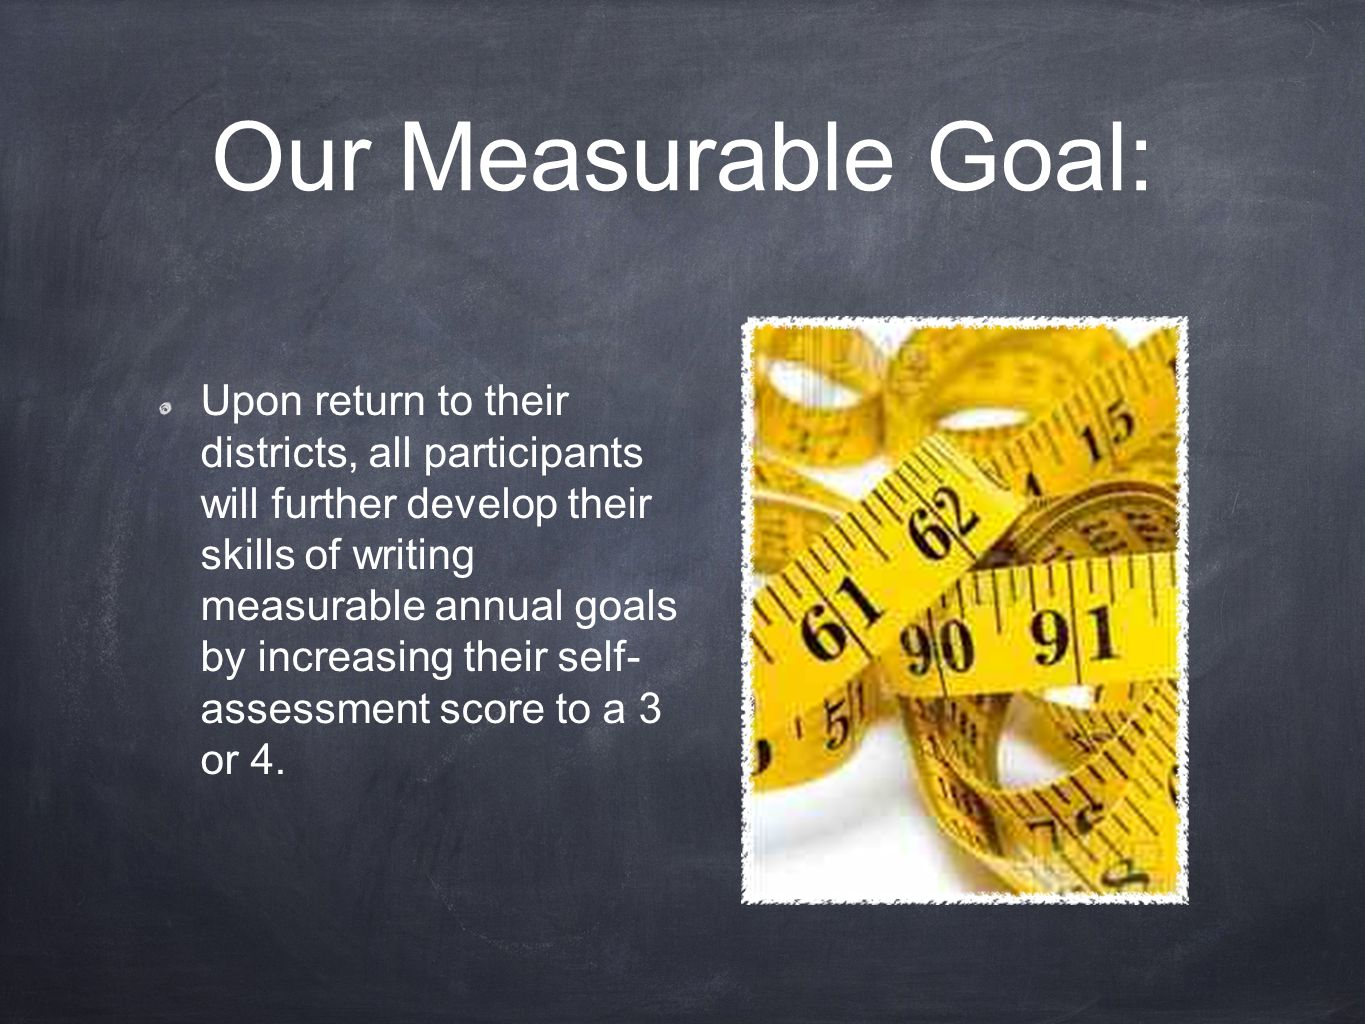 Our Measurable Goal: Upon return to their districts, all participants will further develop their skills of writing measurable annual goals by increasing their self- assessment score to a 3 or 4.